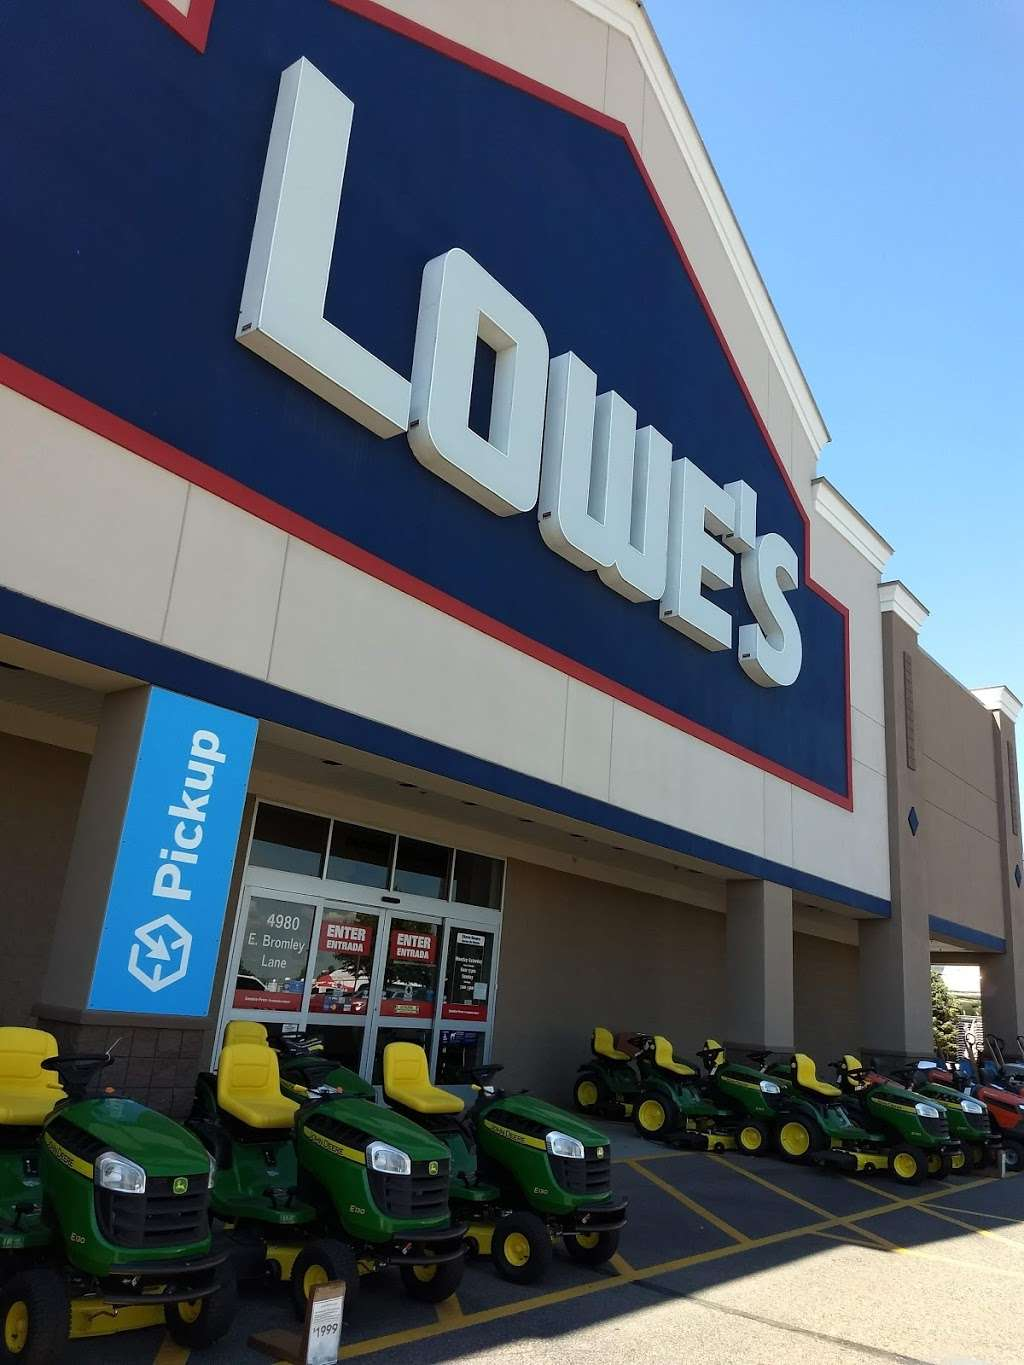 Lowes Home Improvement - hardware store    Photo 5 of 10   Address: 4980 E Bromley Ln, Brighton, CO 80601, USA   Phone: (303) 498-5000